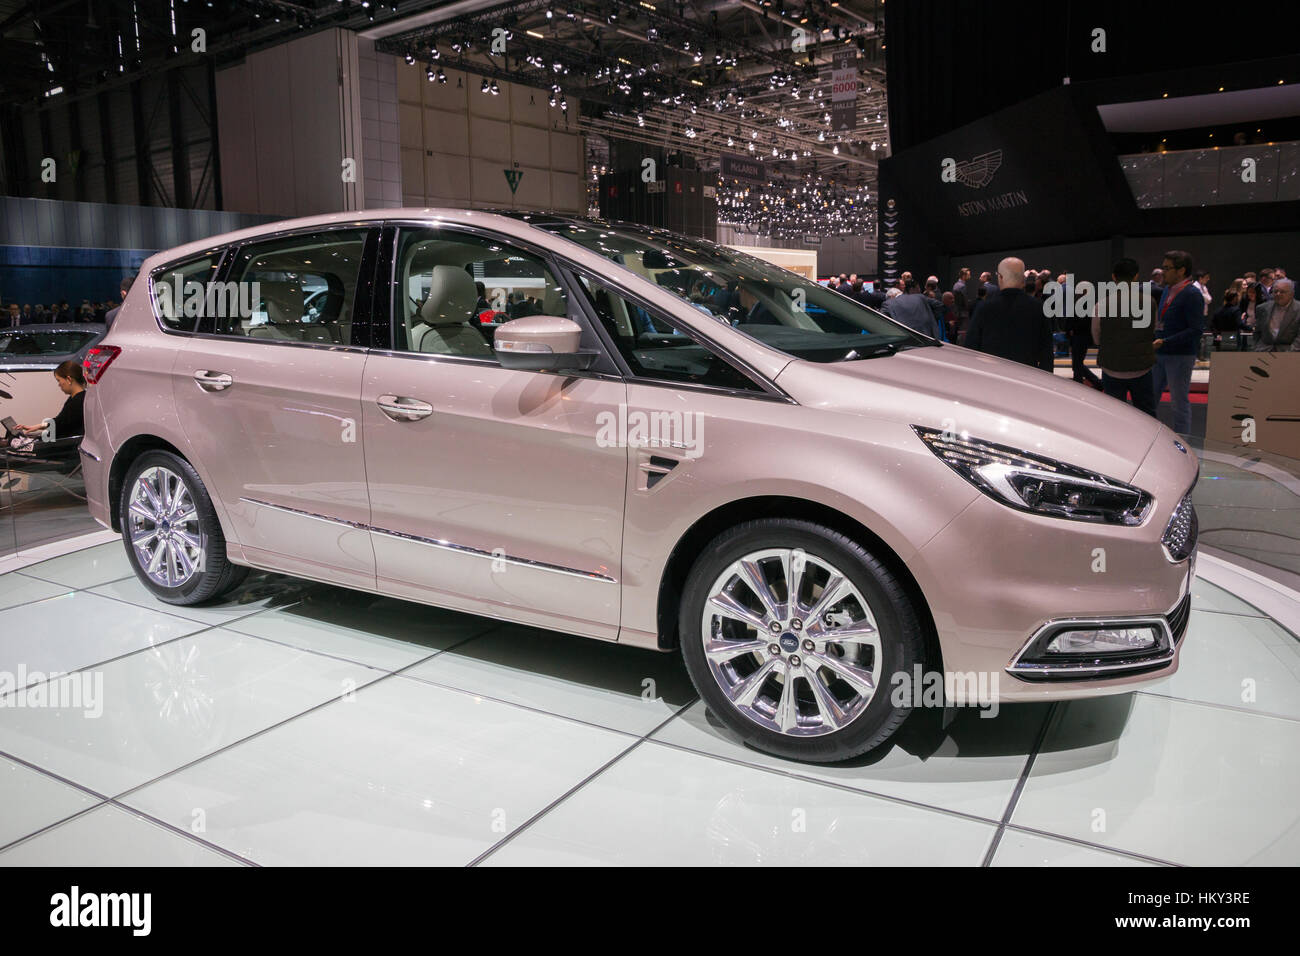 GENEVA, SWITZERLAND - MARCH 2, 2016: Ford S-Max Vignale shown at the 86th International Geneva Motor Show in Palexpo, - Stock Image